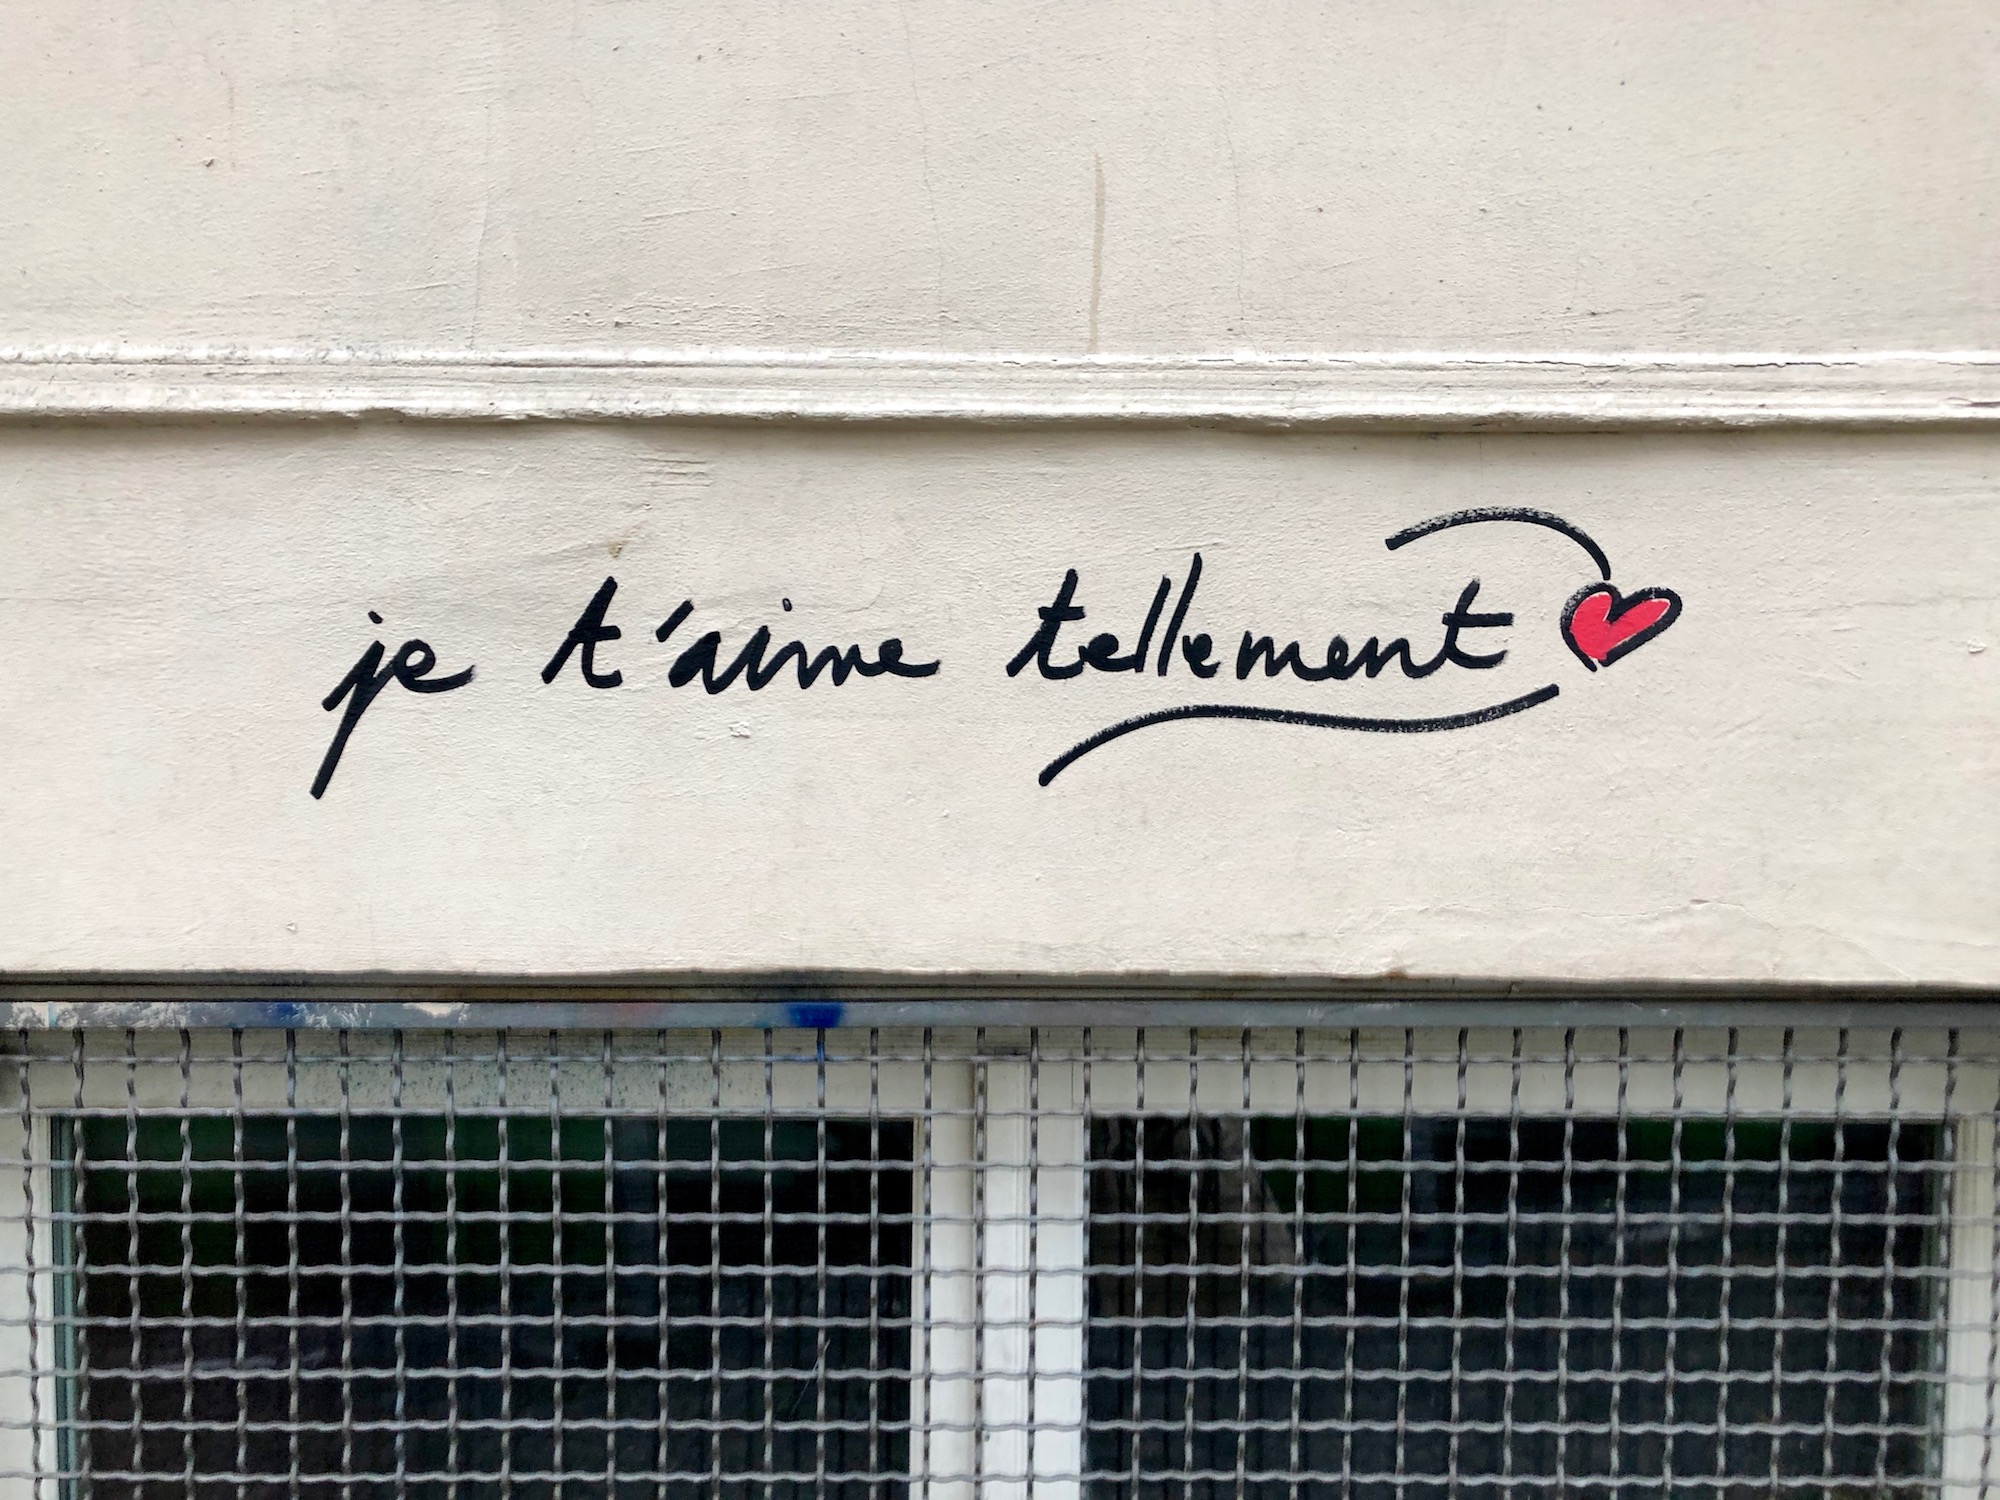 HiP Paris Blog tells you about one writer's experience learning French in Paris and exploring the street art like this piece: I love you so much.